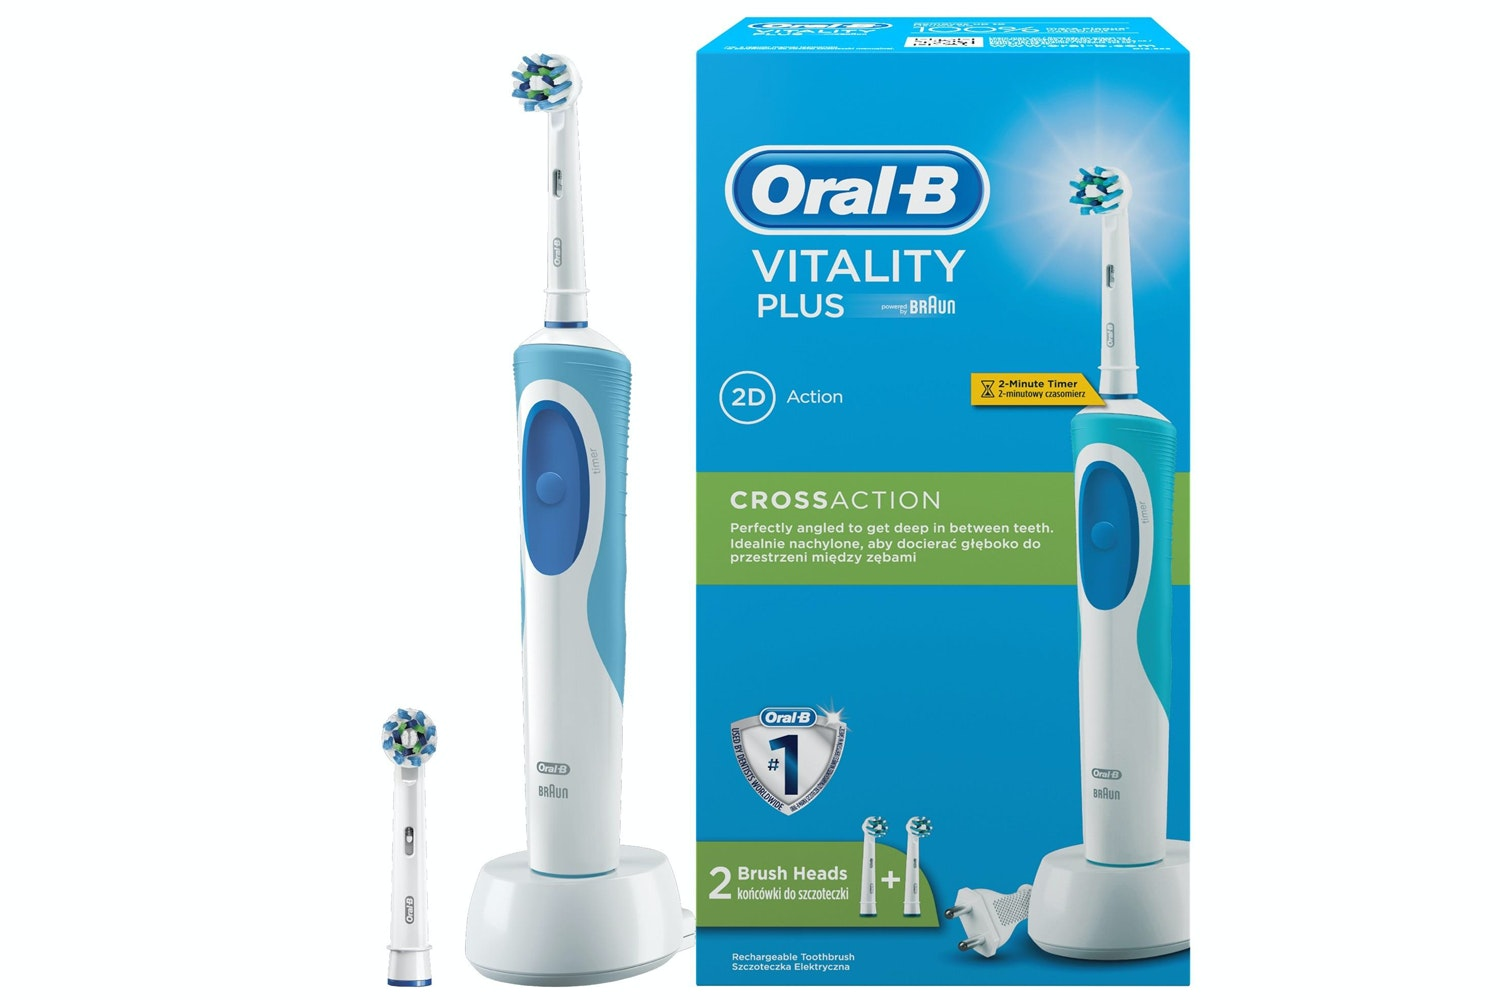 Oral-B Vitality Plus CrossAction Electric Toothbrush | OB4210201123859